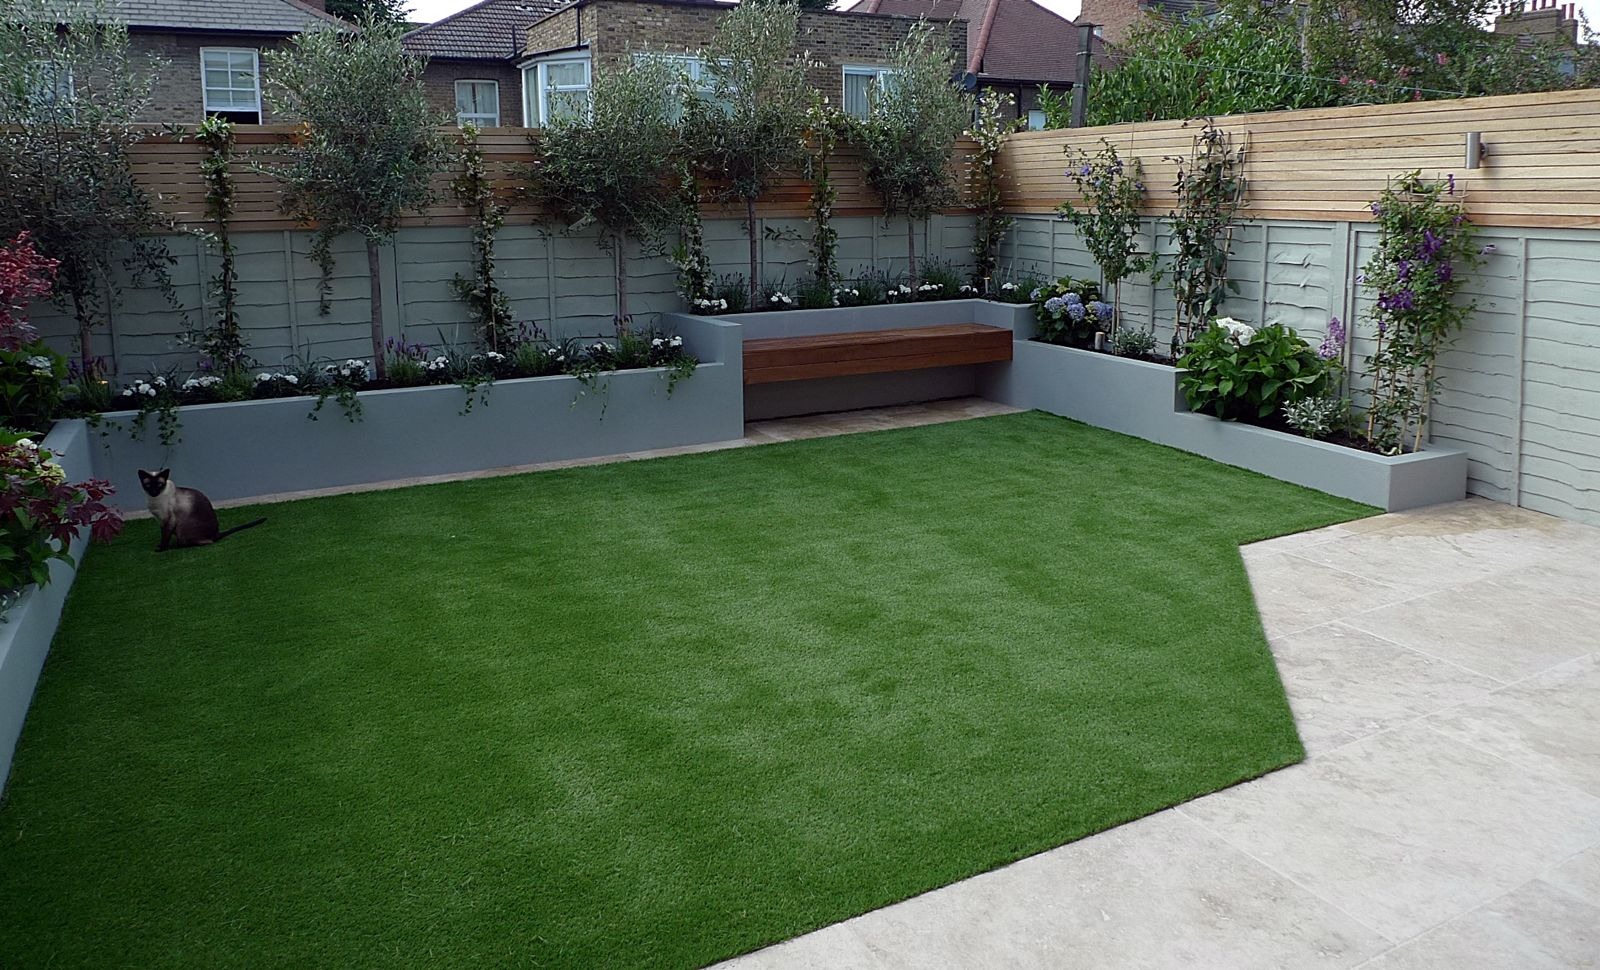 Small garden design raised beds artificial grass for Small garden layout